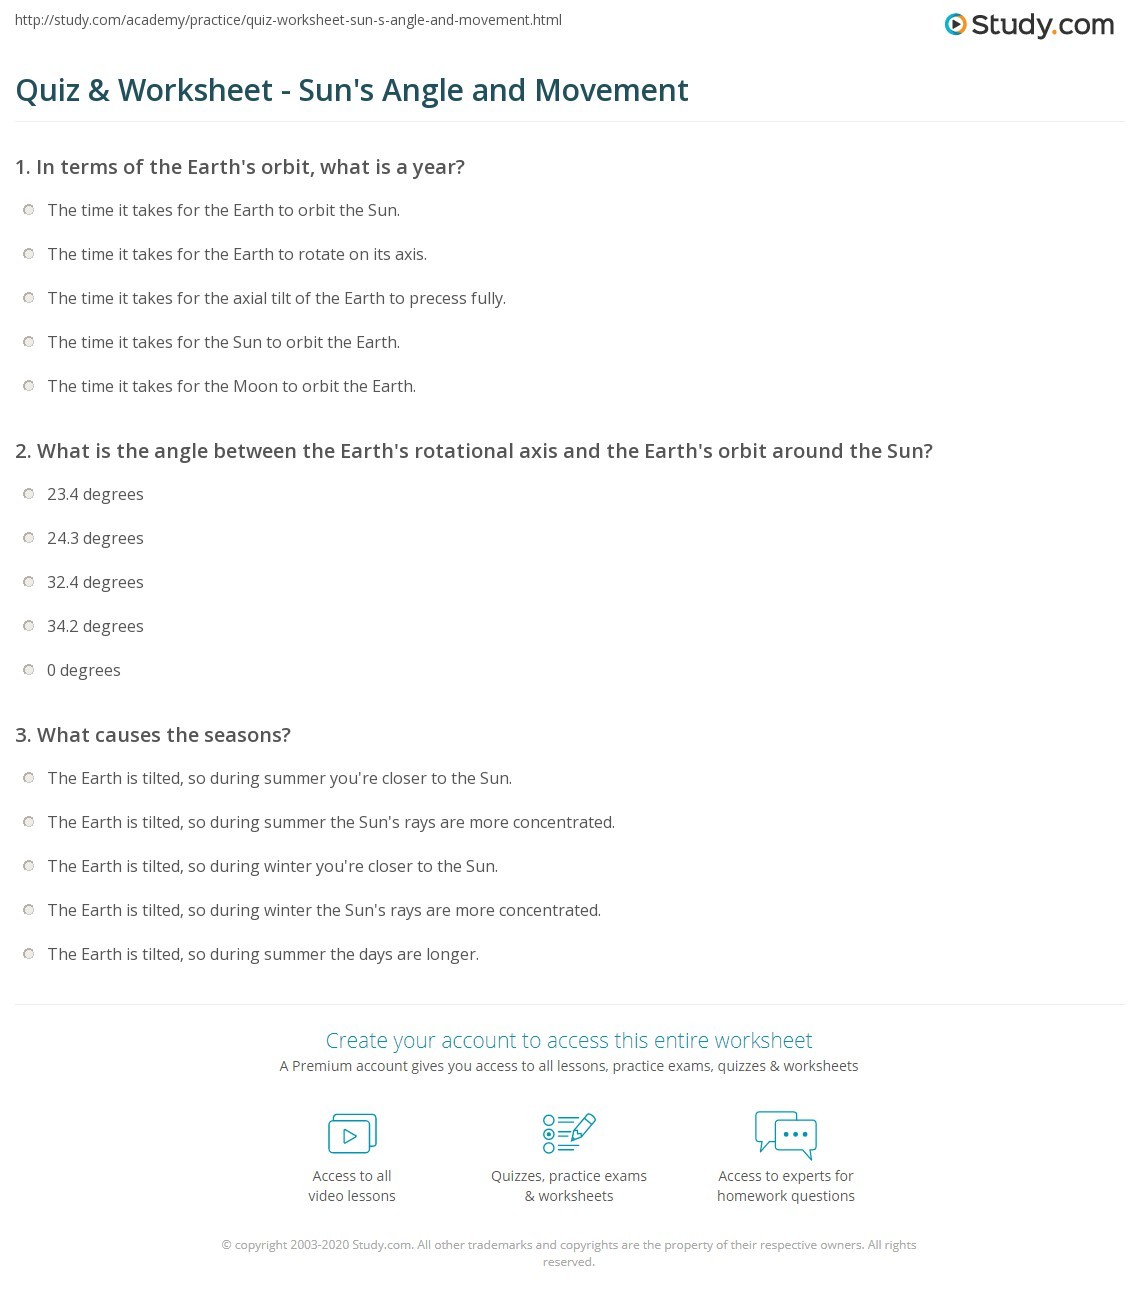 Quiz Worksheet Suns Angle And Movement Study